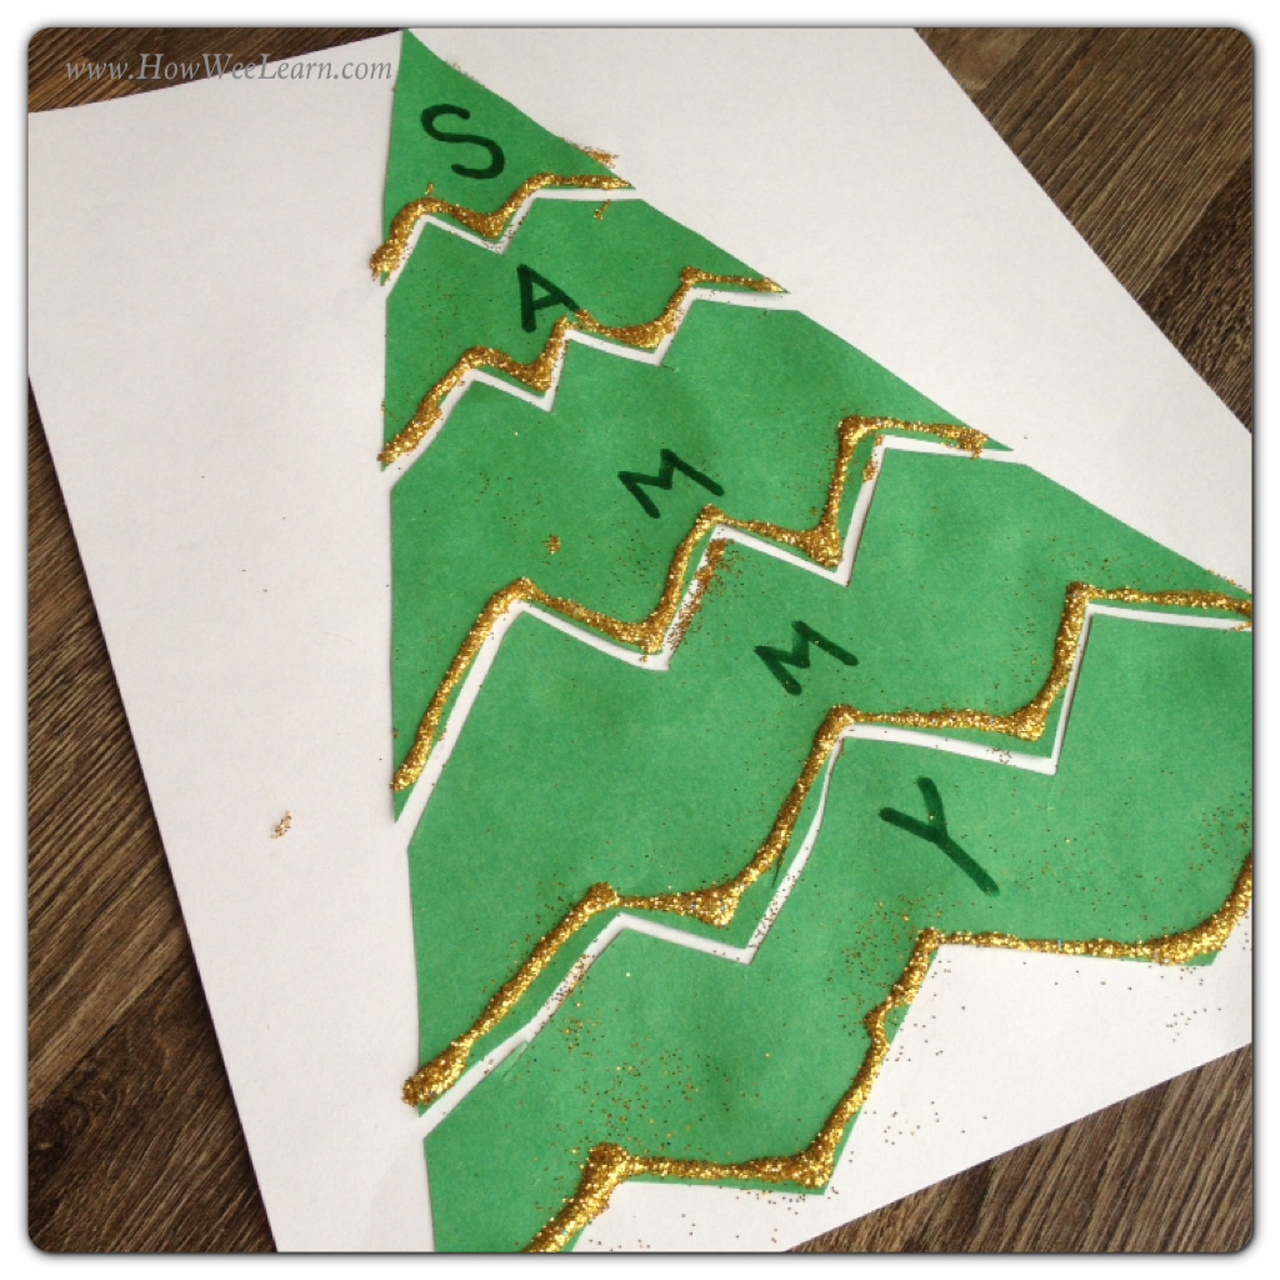 Preschool christmas projects name puzzles how wee learn for Holiday crafts for preschoolers to make